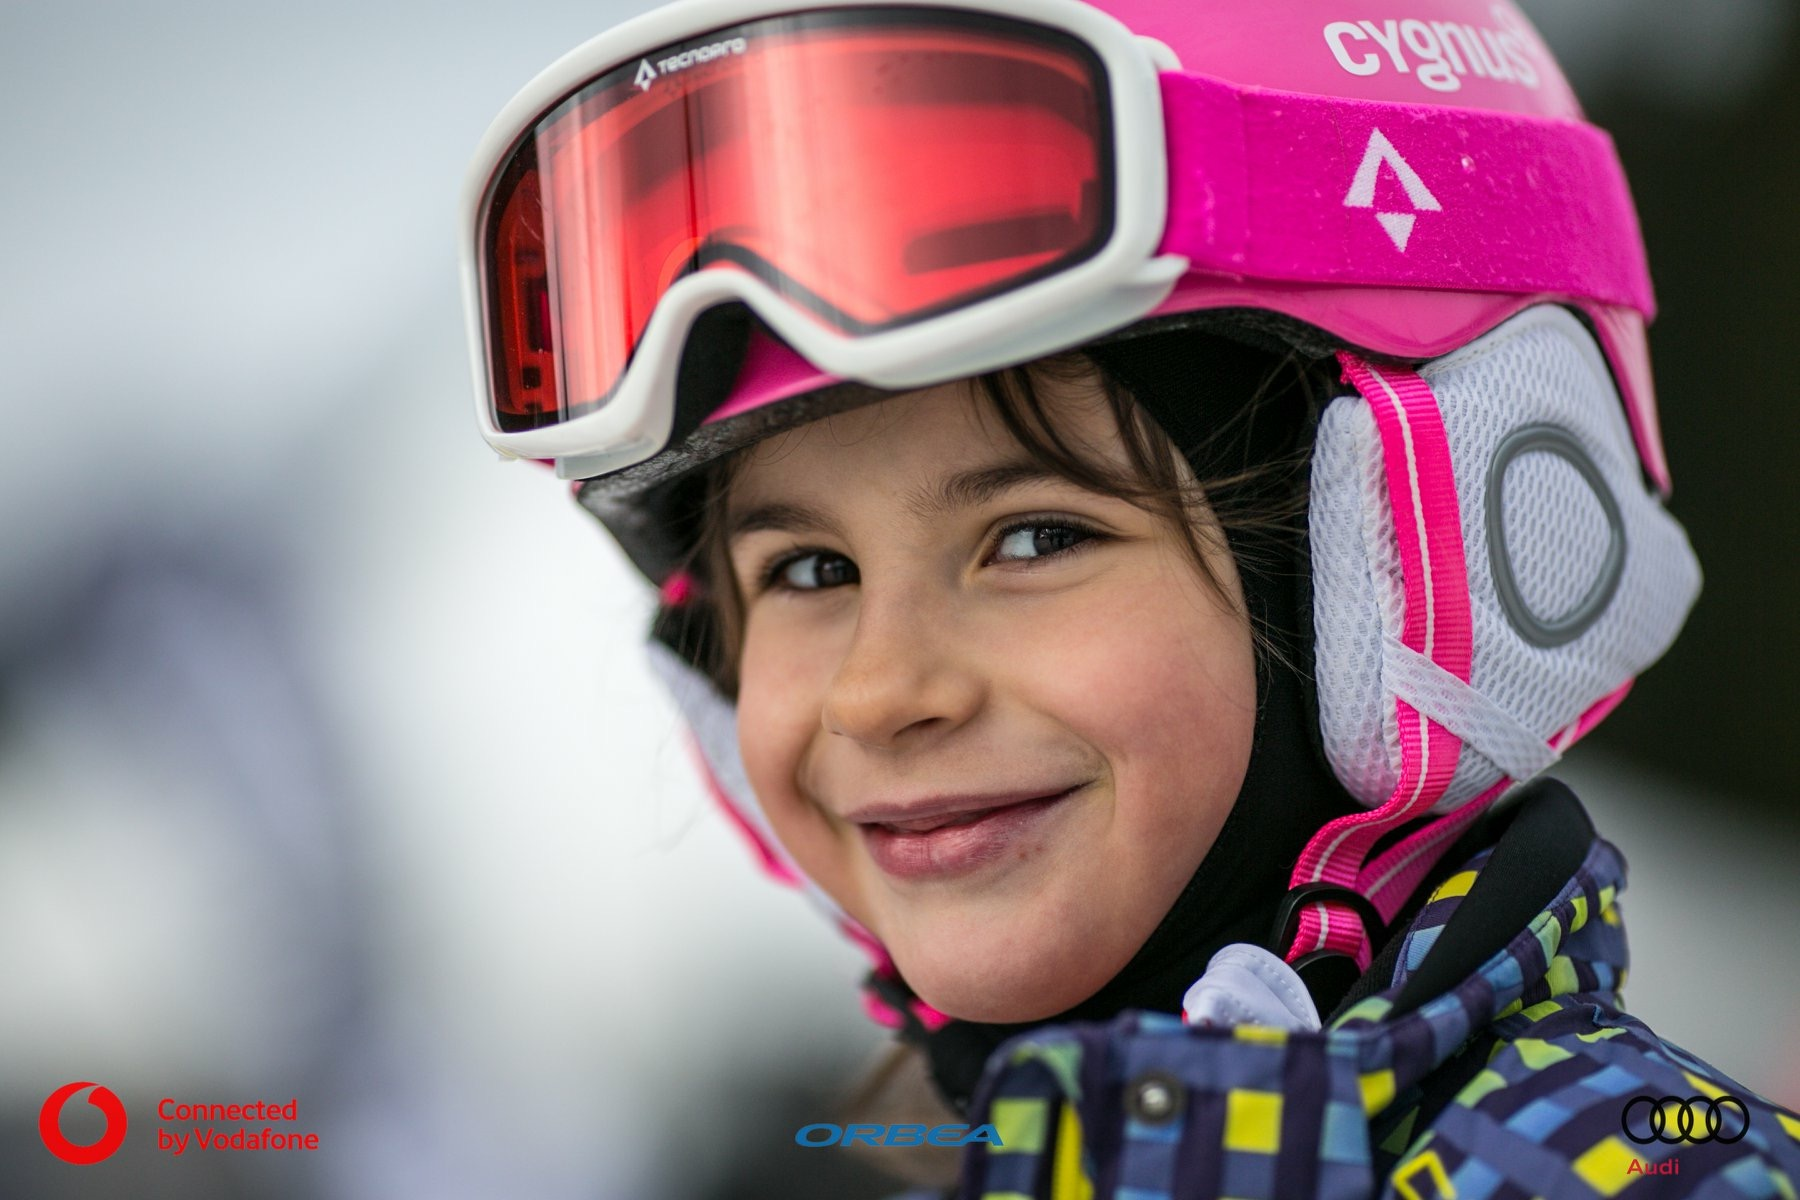 Malina Tutiu (racing kids)